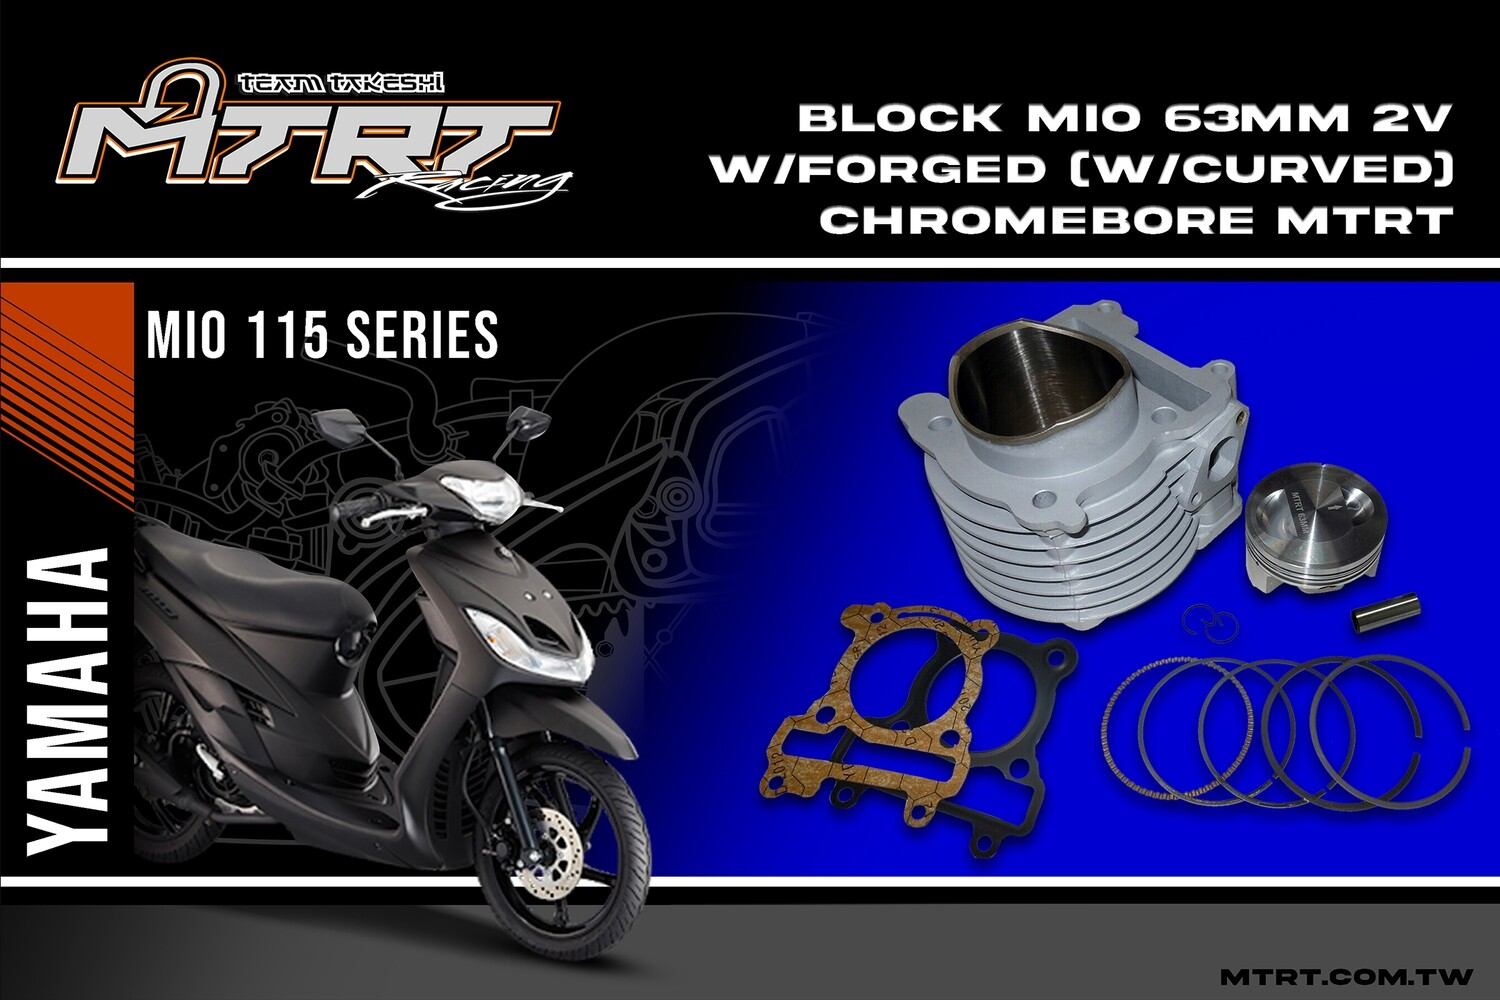 BLOCK MIO 63MM 2V with Forged Piston (Curved) Chromebore  MTRT